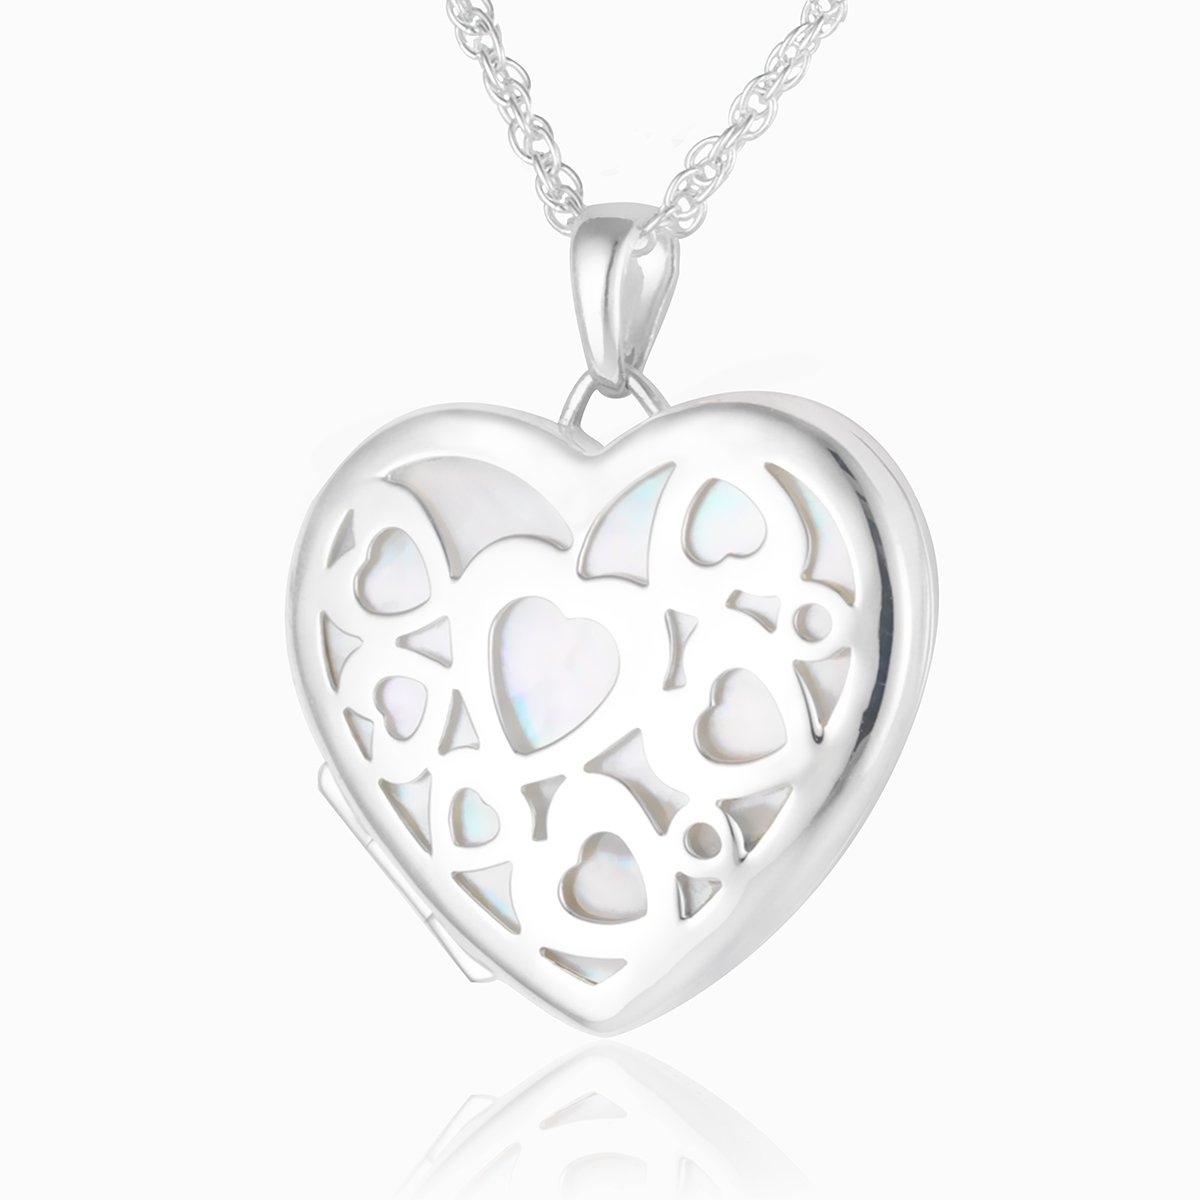 Product title: Mother of Pearl Heart Locket, product type: Locket